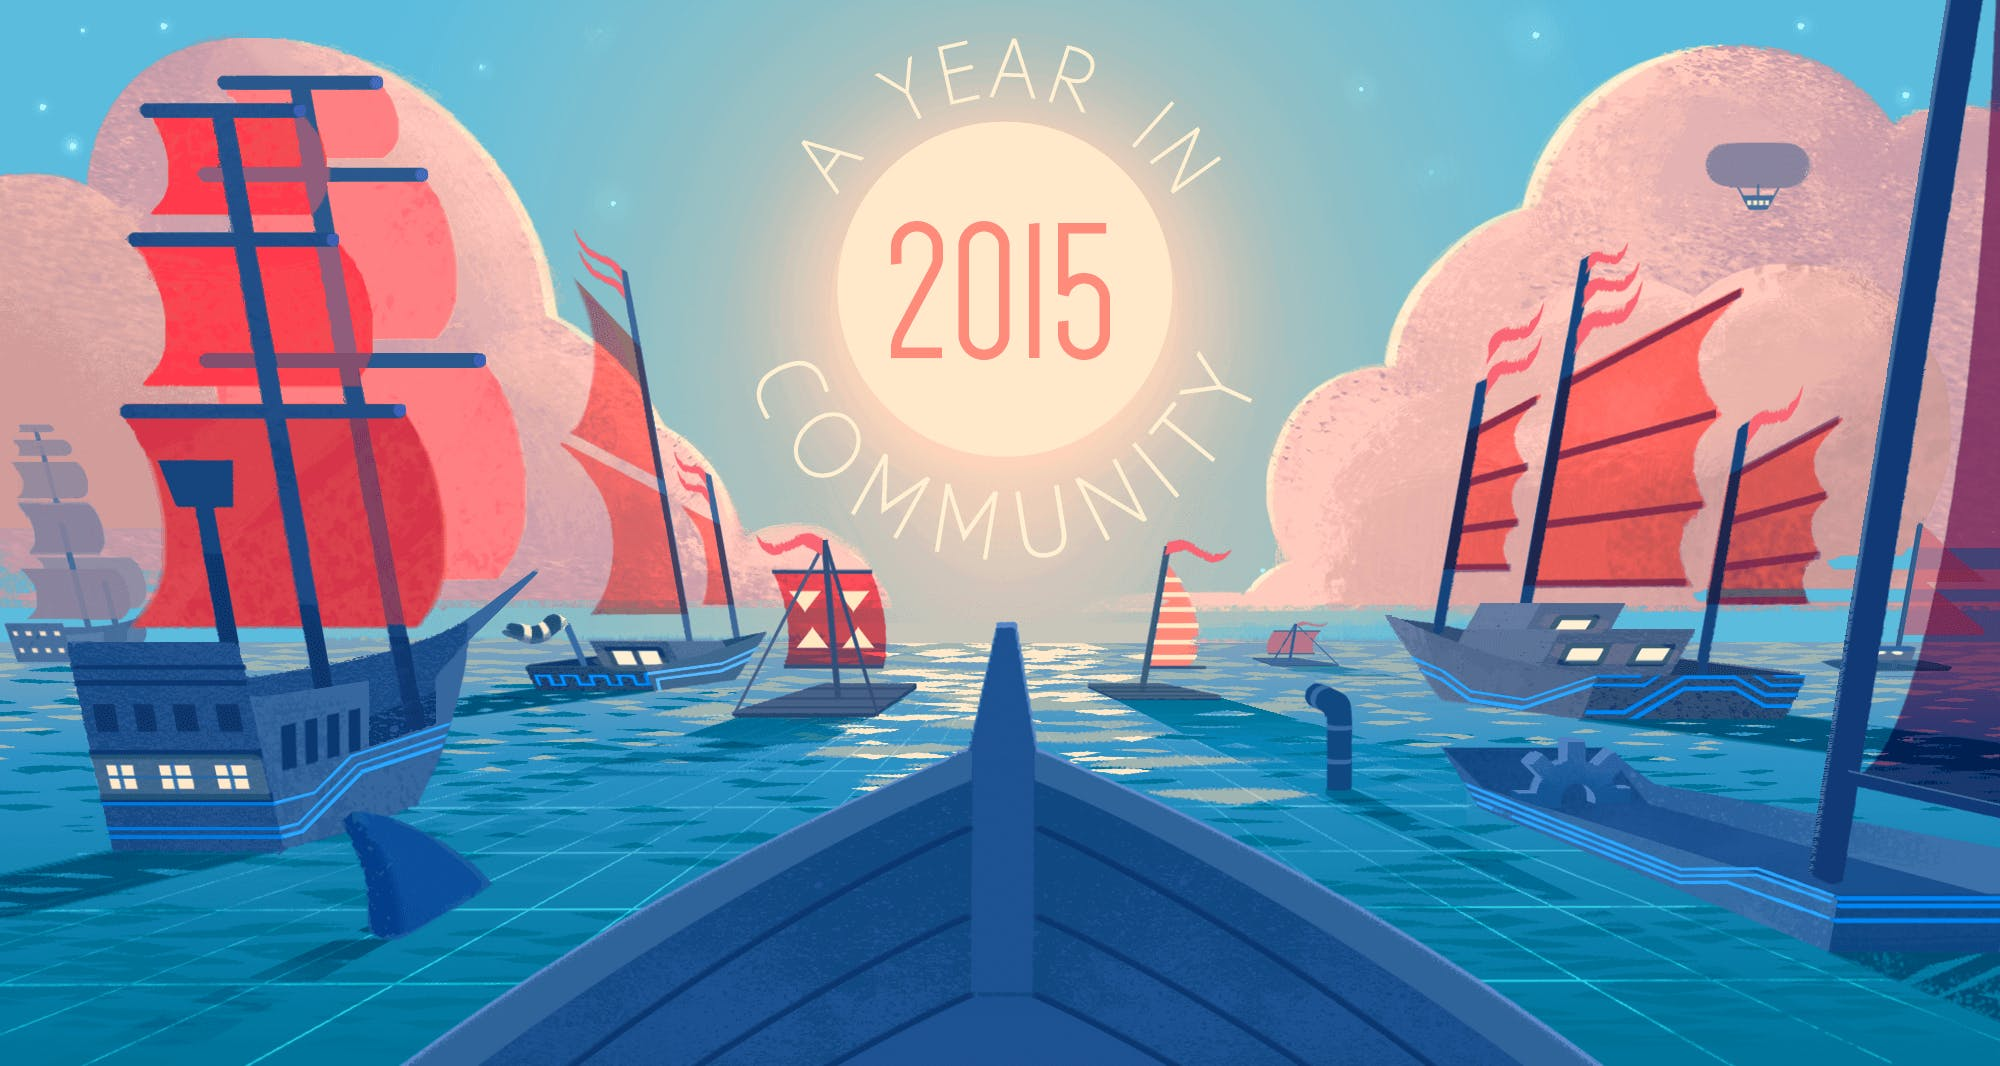 ships sailing into the sun with the words 'A year in 2015 community' illustration